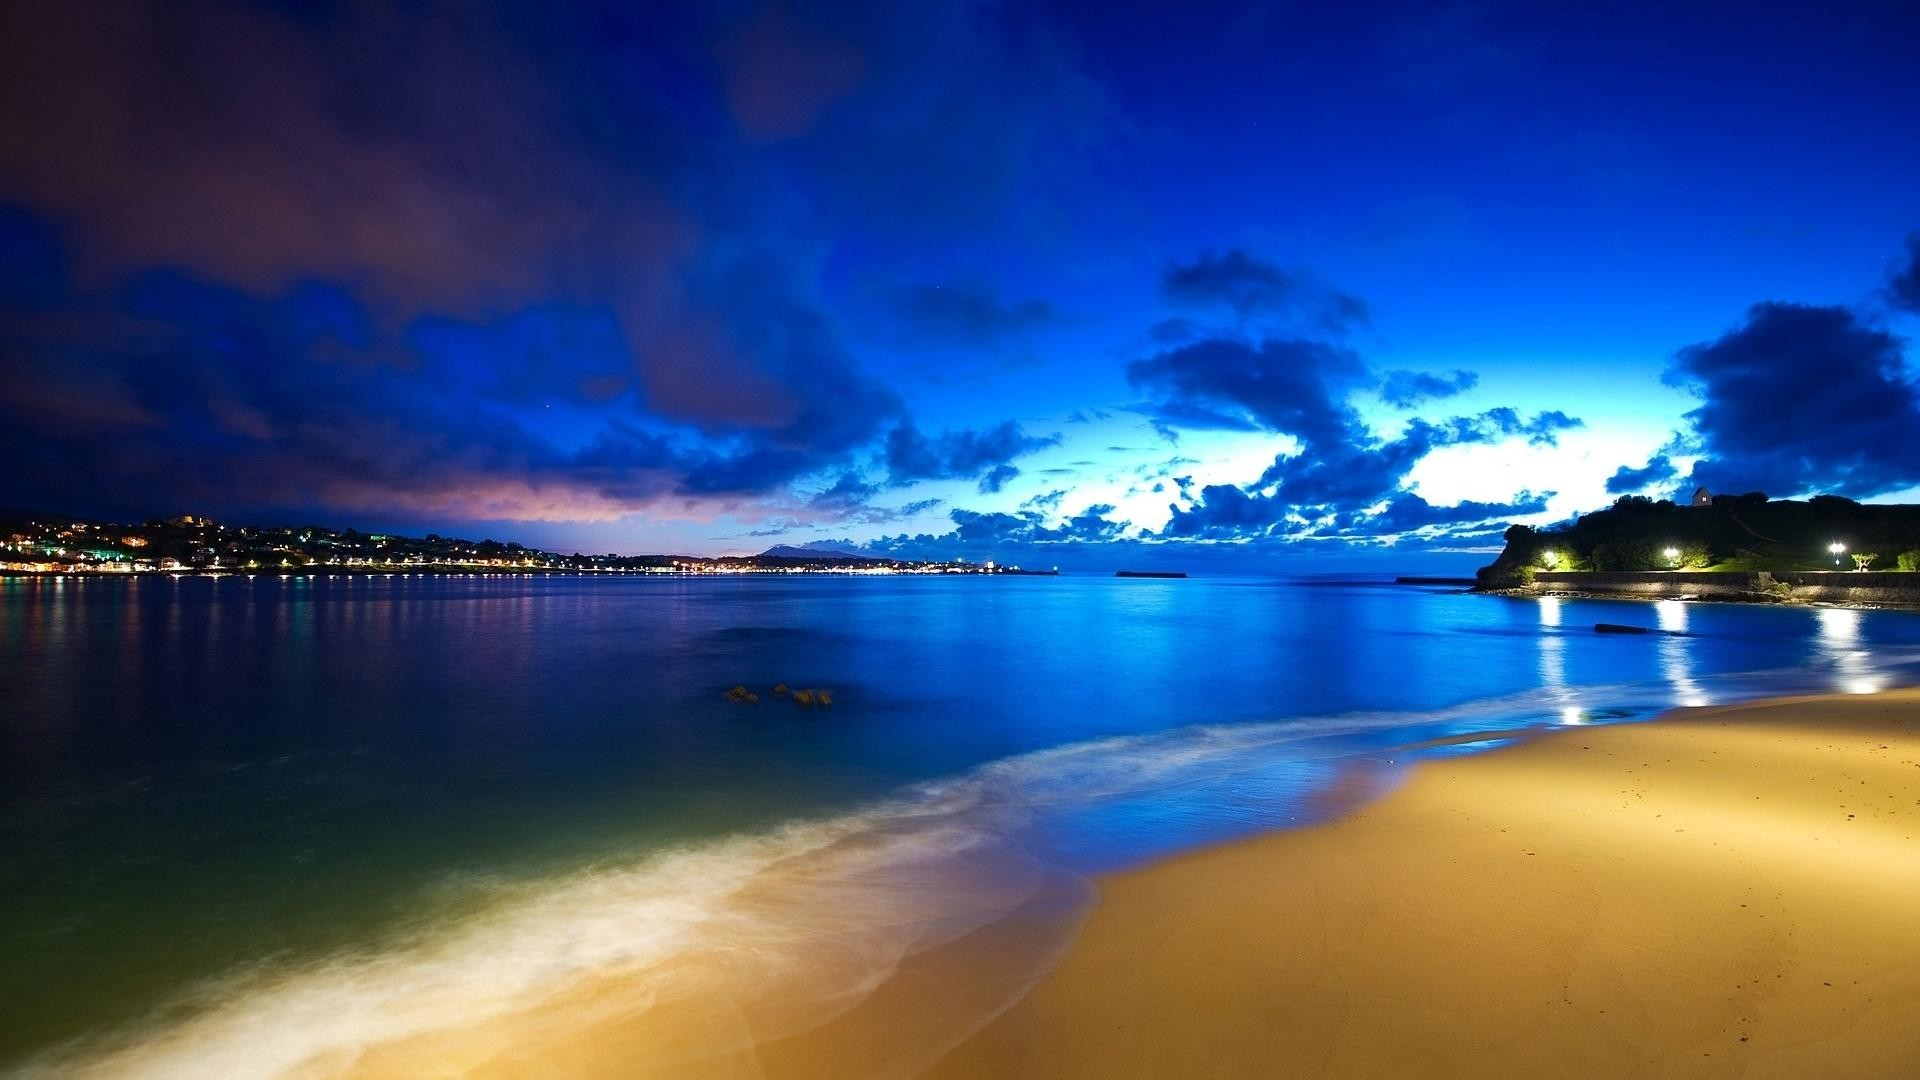 1920x1080  The blue sky coast scenic desktop backgrounds wide wallpapers :1280x800,1440x900,1680x1050